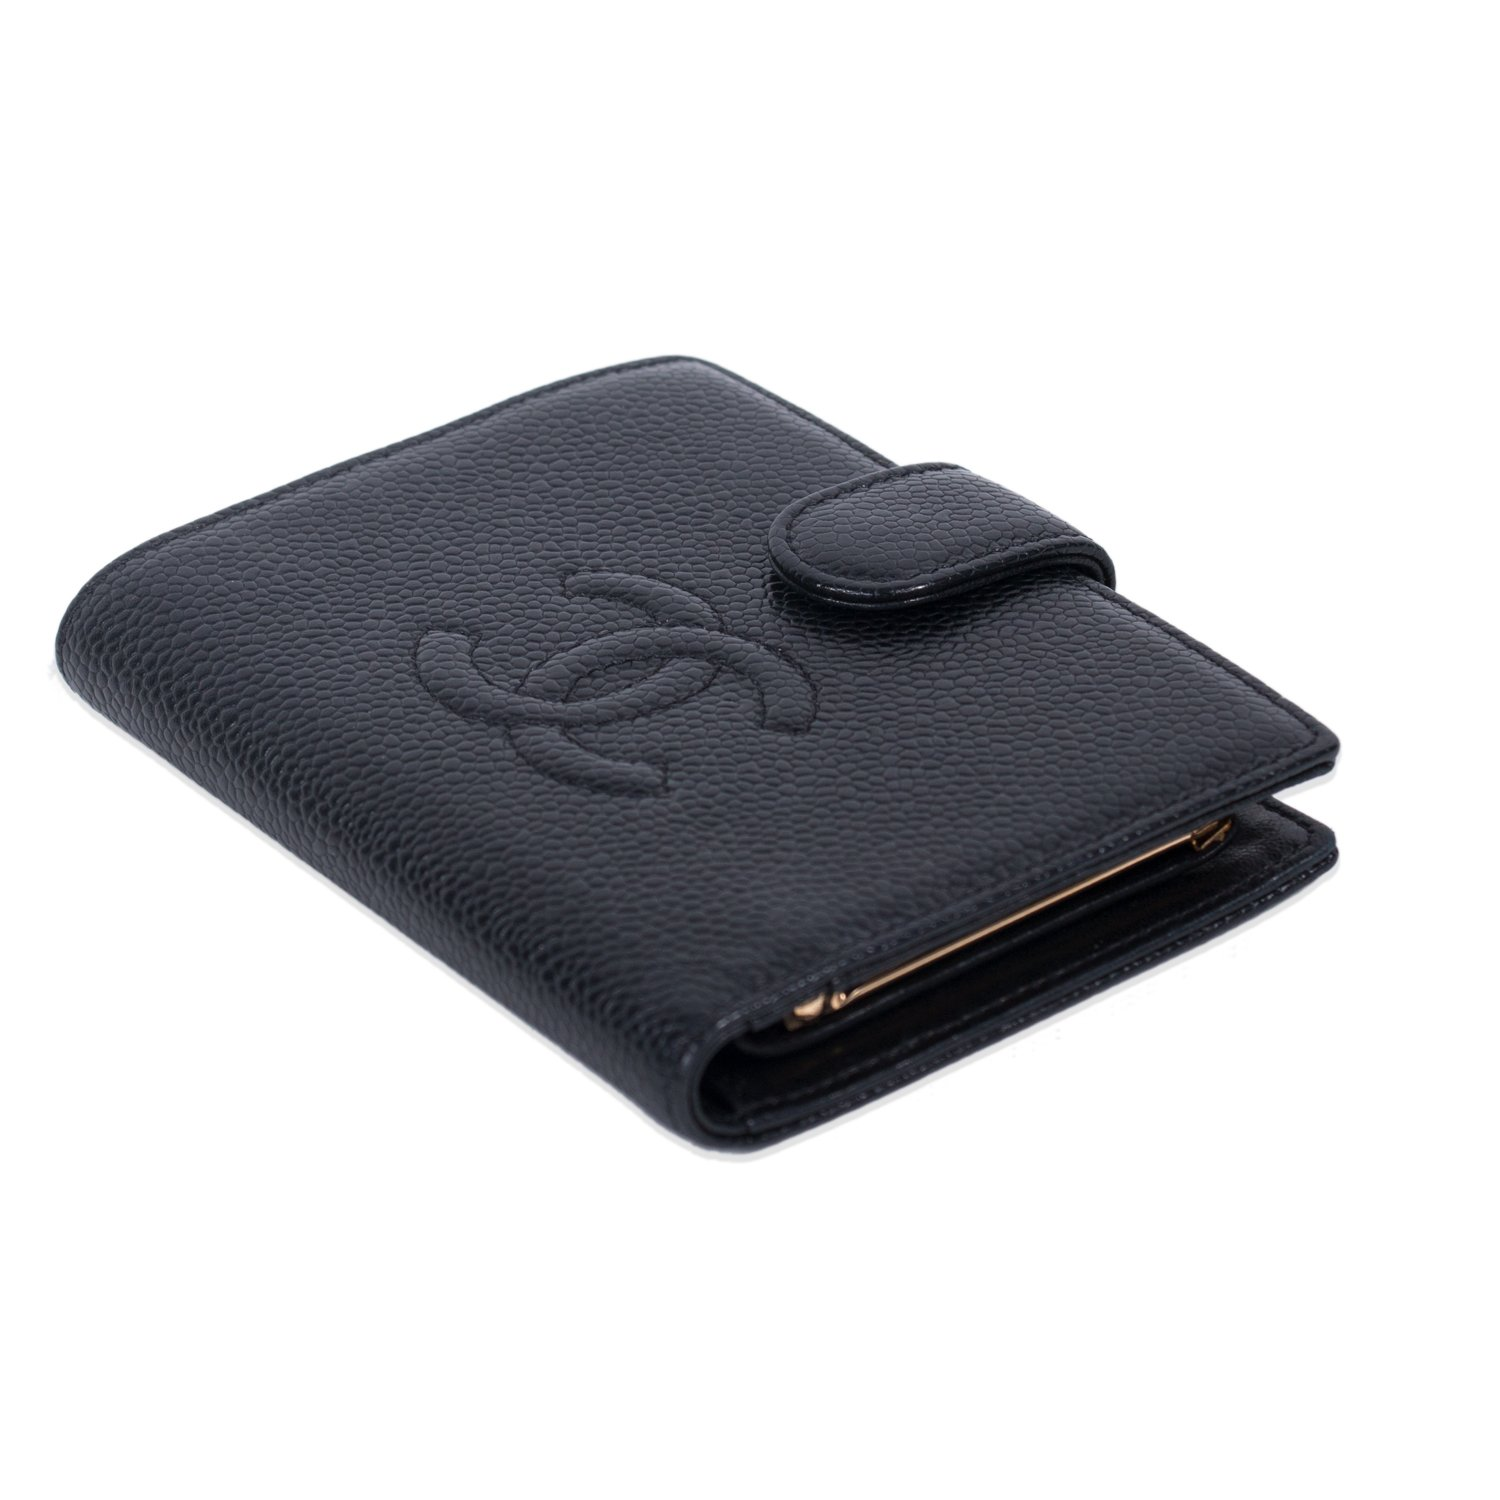 ed2af223e48 CHANEL BLACK CAVIAR LEATHER CC COMPACT WALLET -